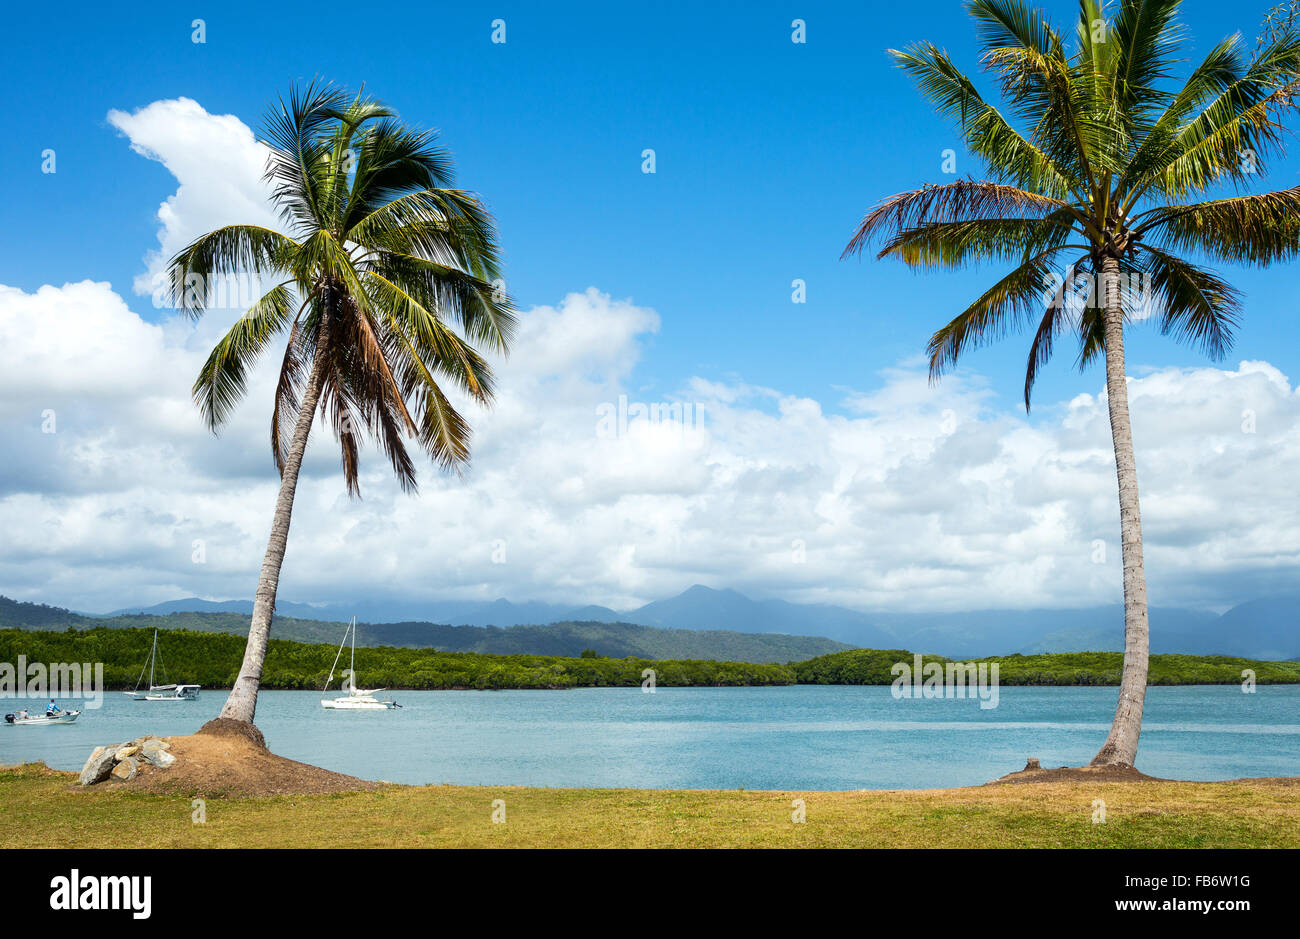 Australia, Queensland, Port Douglas, palms on the seafront - Stock Image